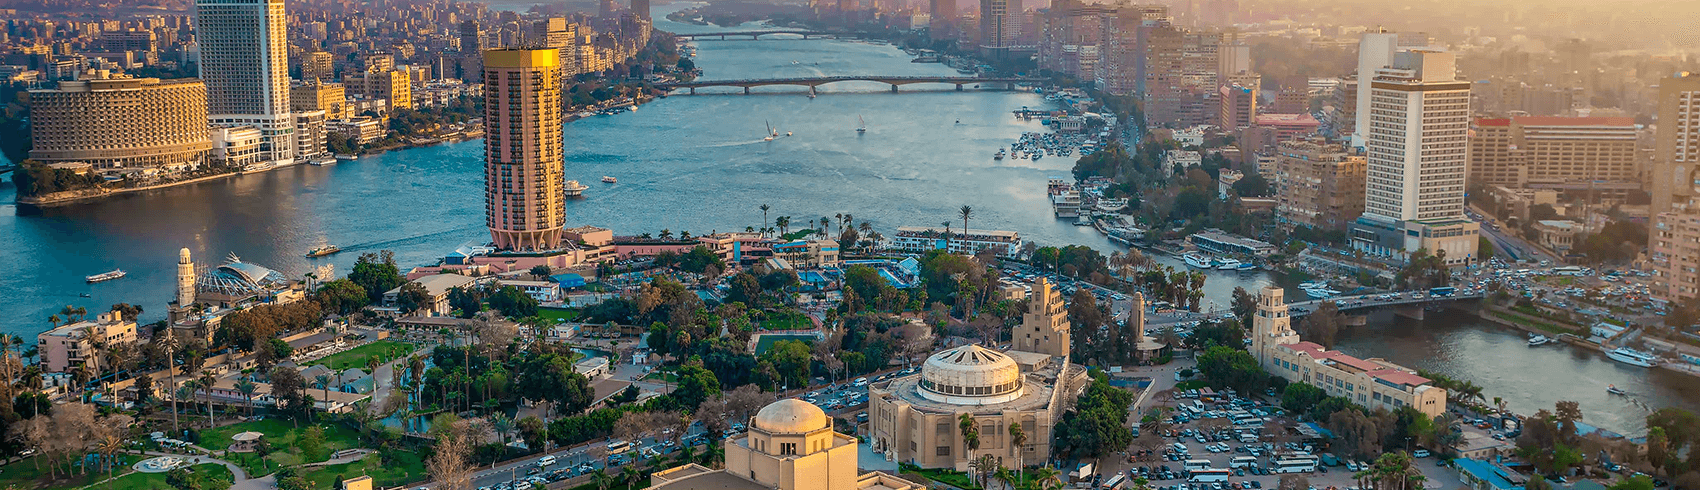 Tourism in Cairo